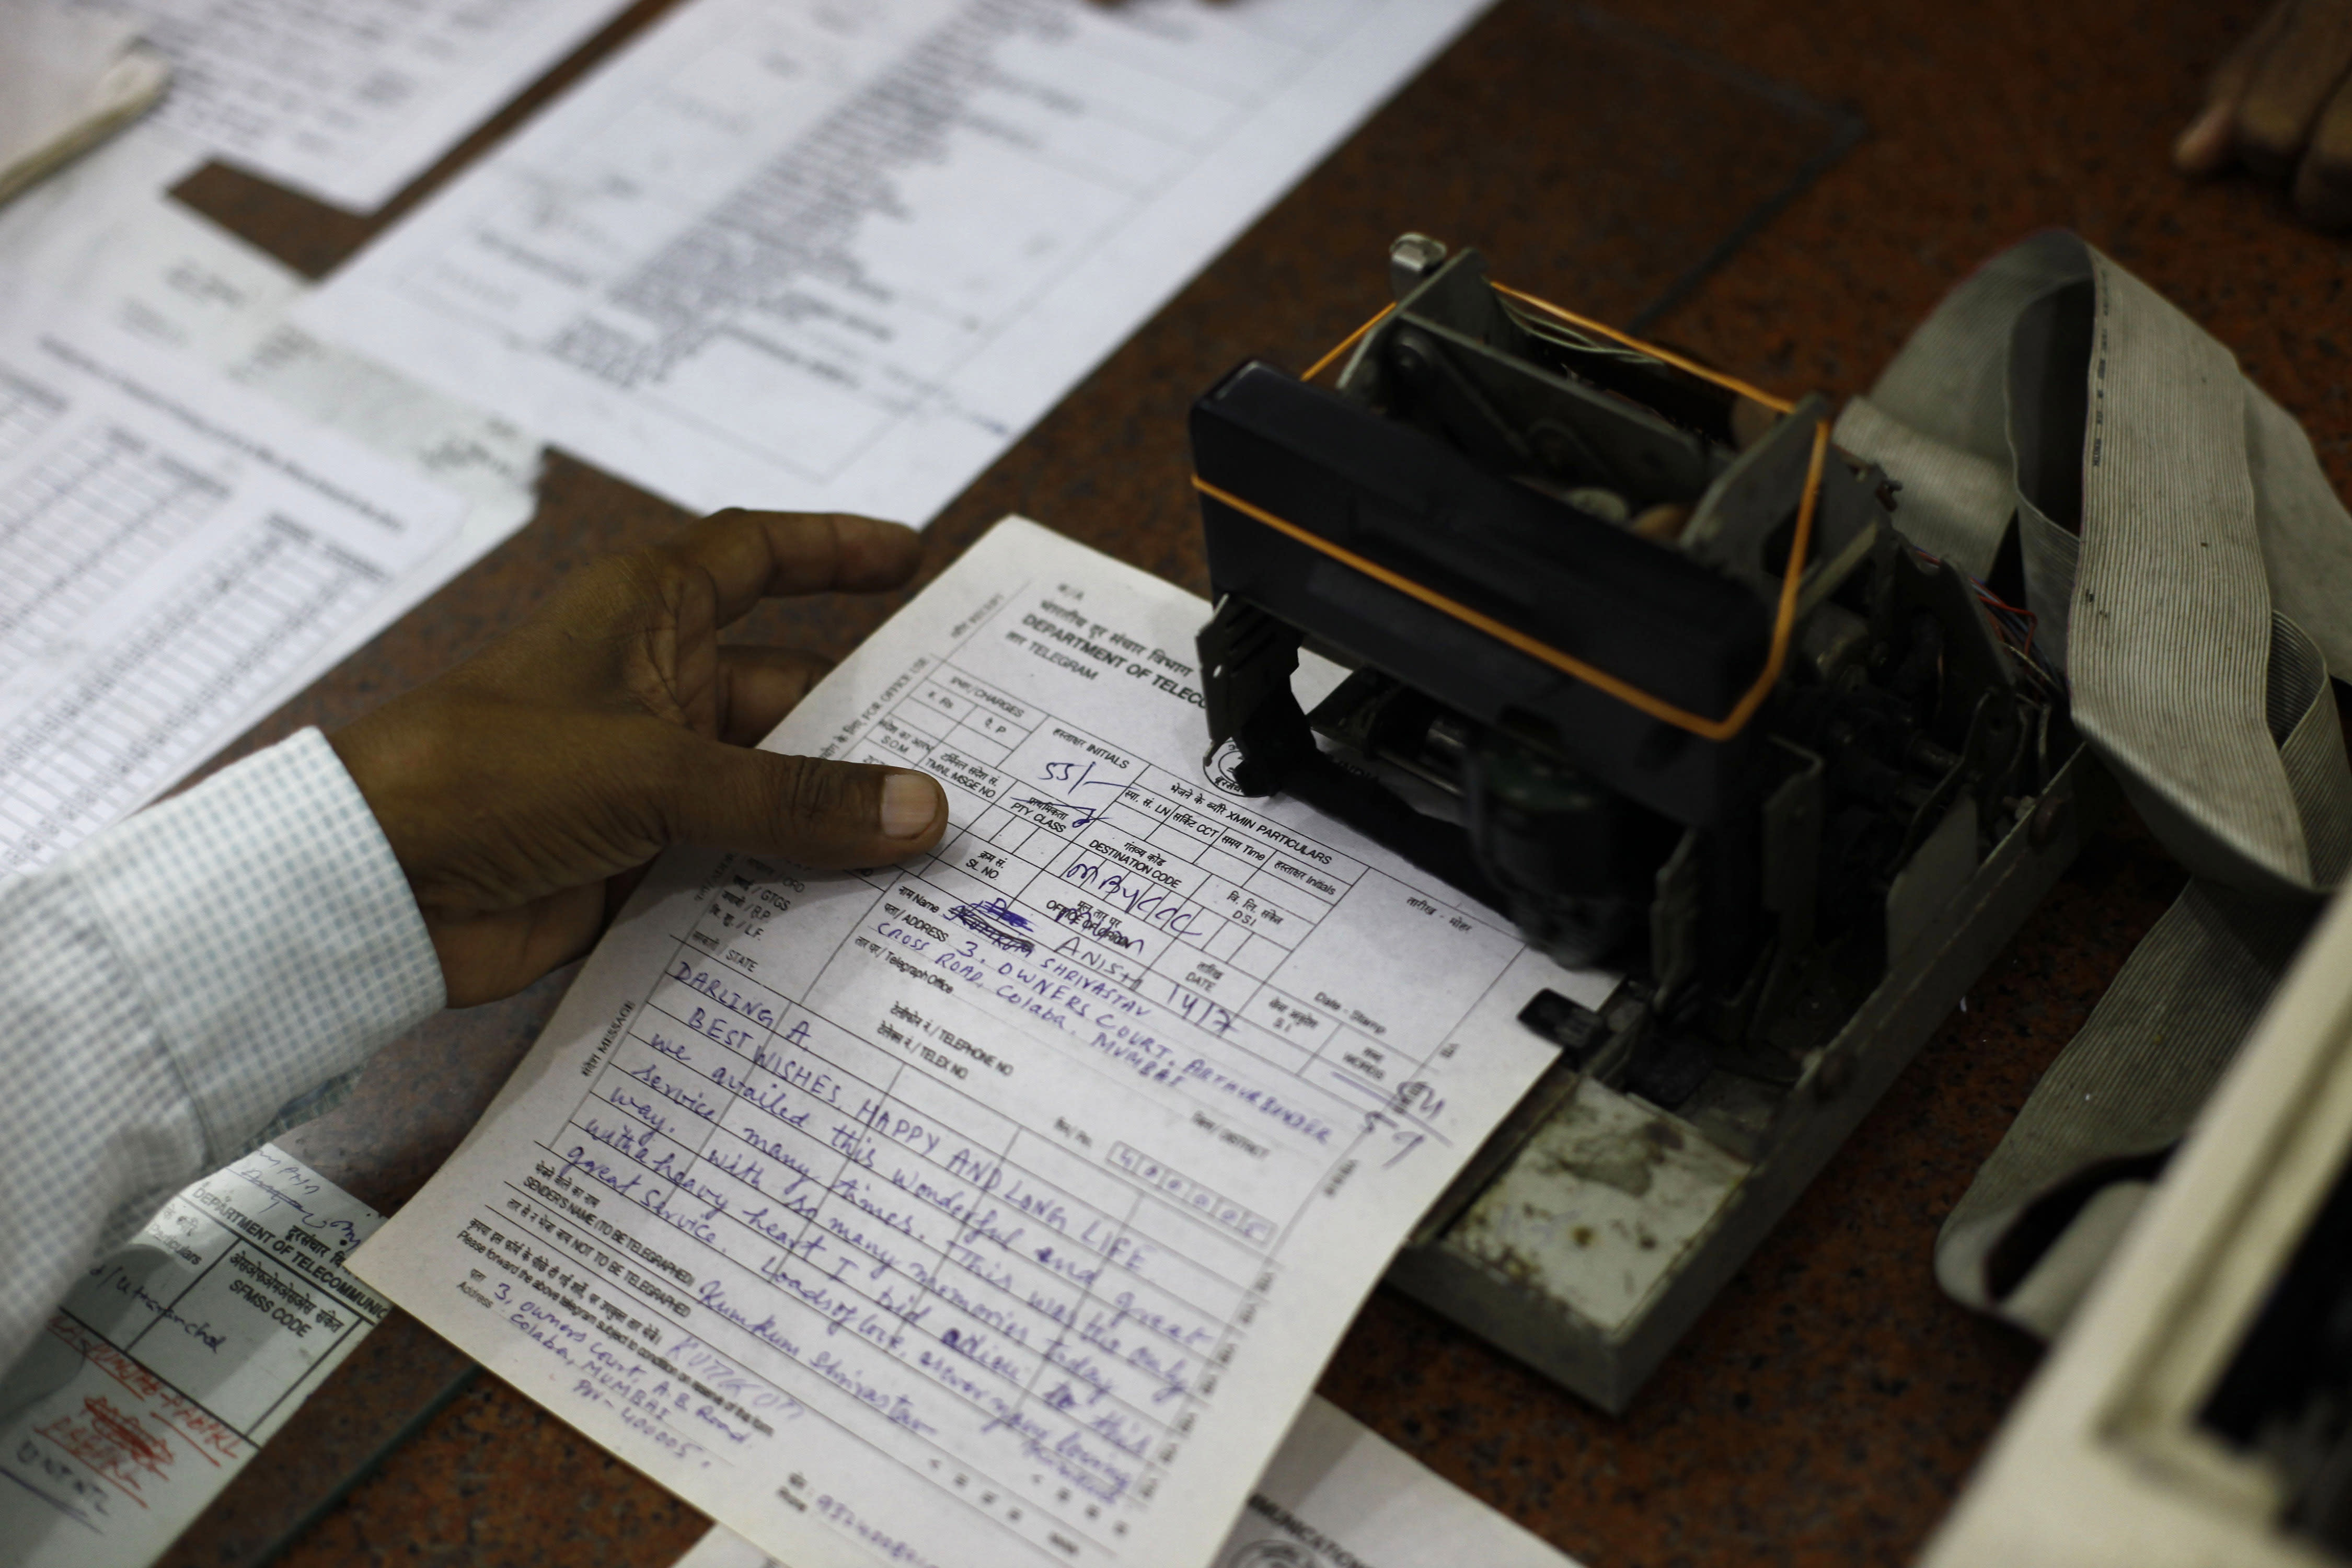 An Indian telegraph employee processes a telegram on the last day of the 163-year-old service at the central telegraph office in Mumbai, India, Sunday, July 14, 2013. Sunday night, the state-run telecommunications company will send its final telegram, closing down a service that fast became a relic in an age of email, reliable landlines and ubiquitous cellphones. (AP Photo/Rafiq Maqbool)